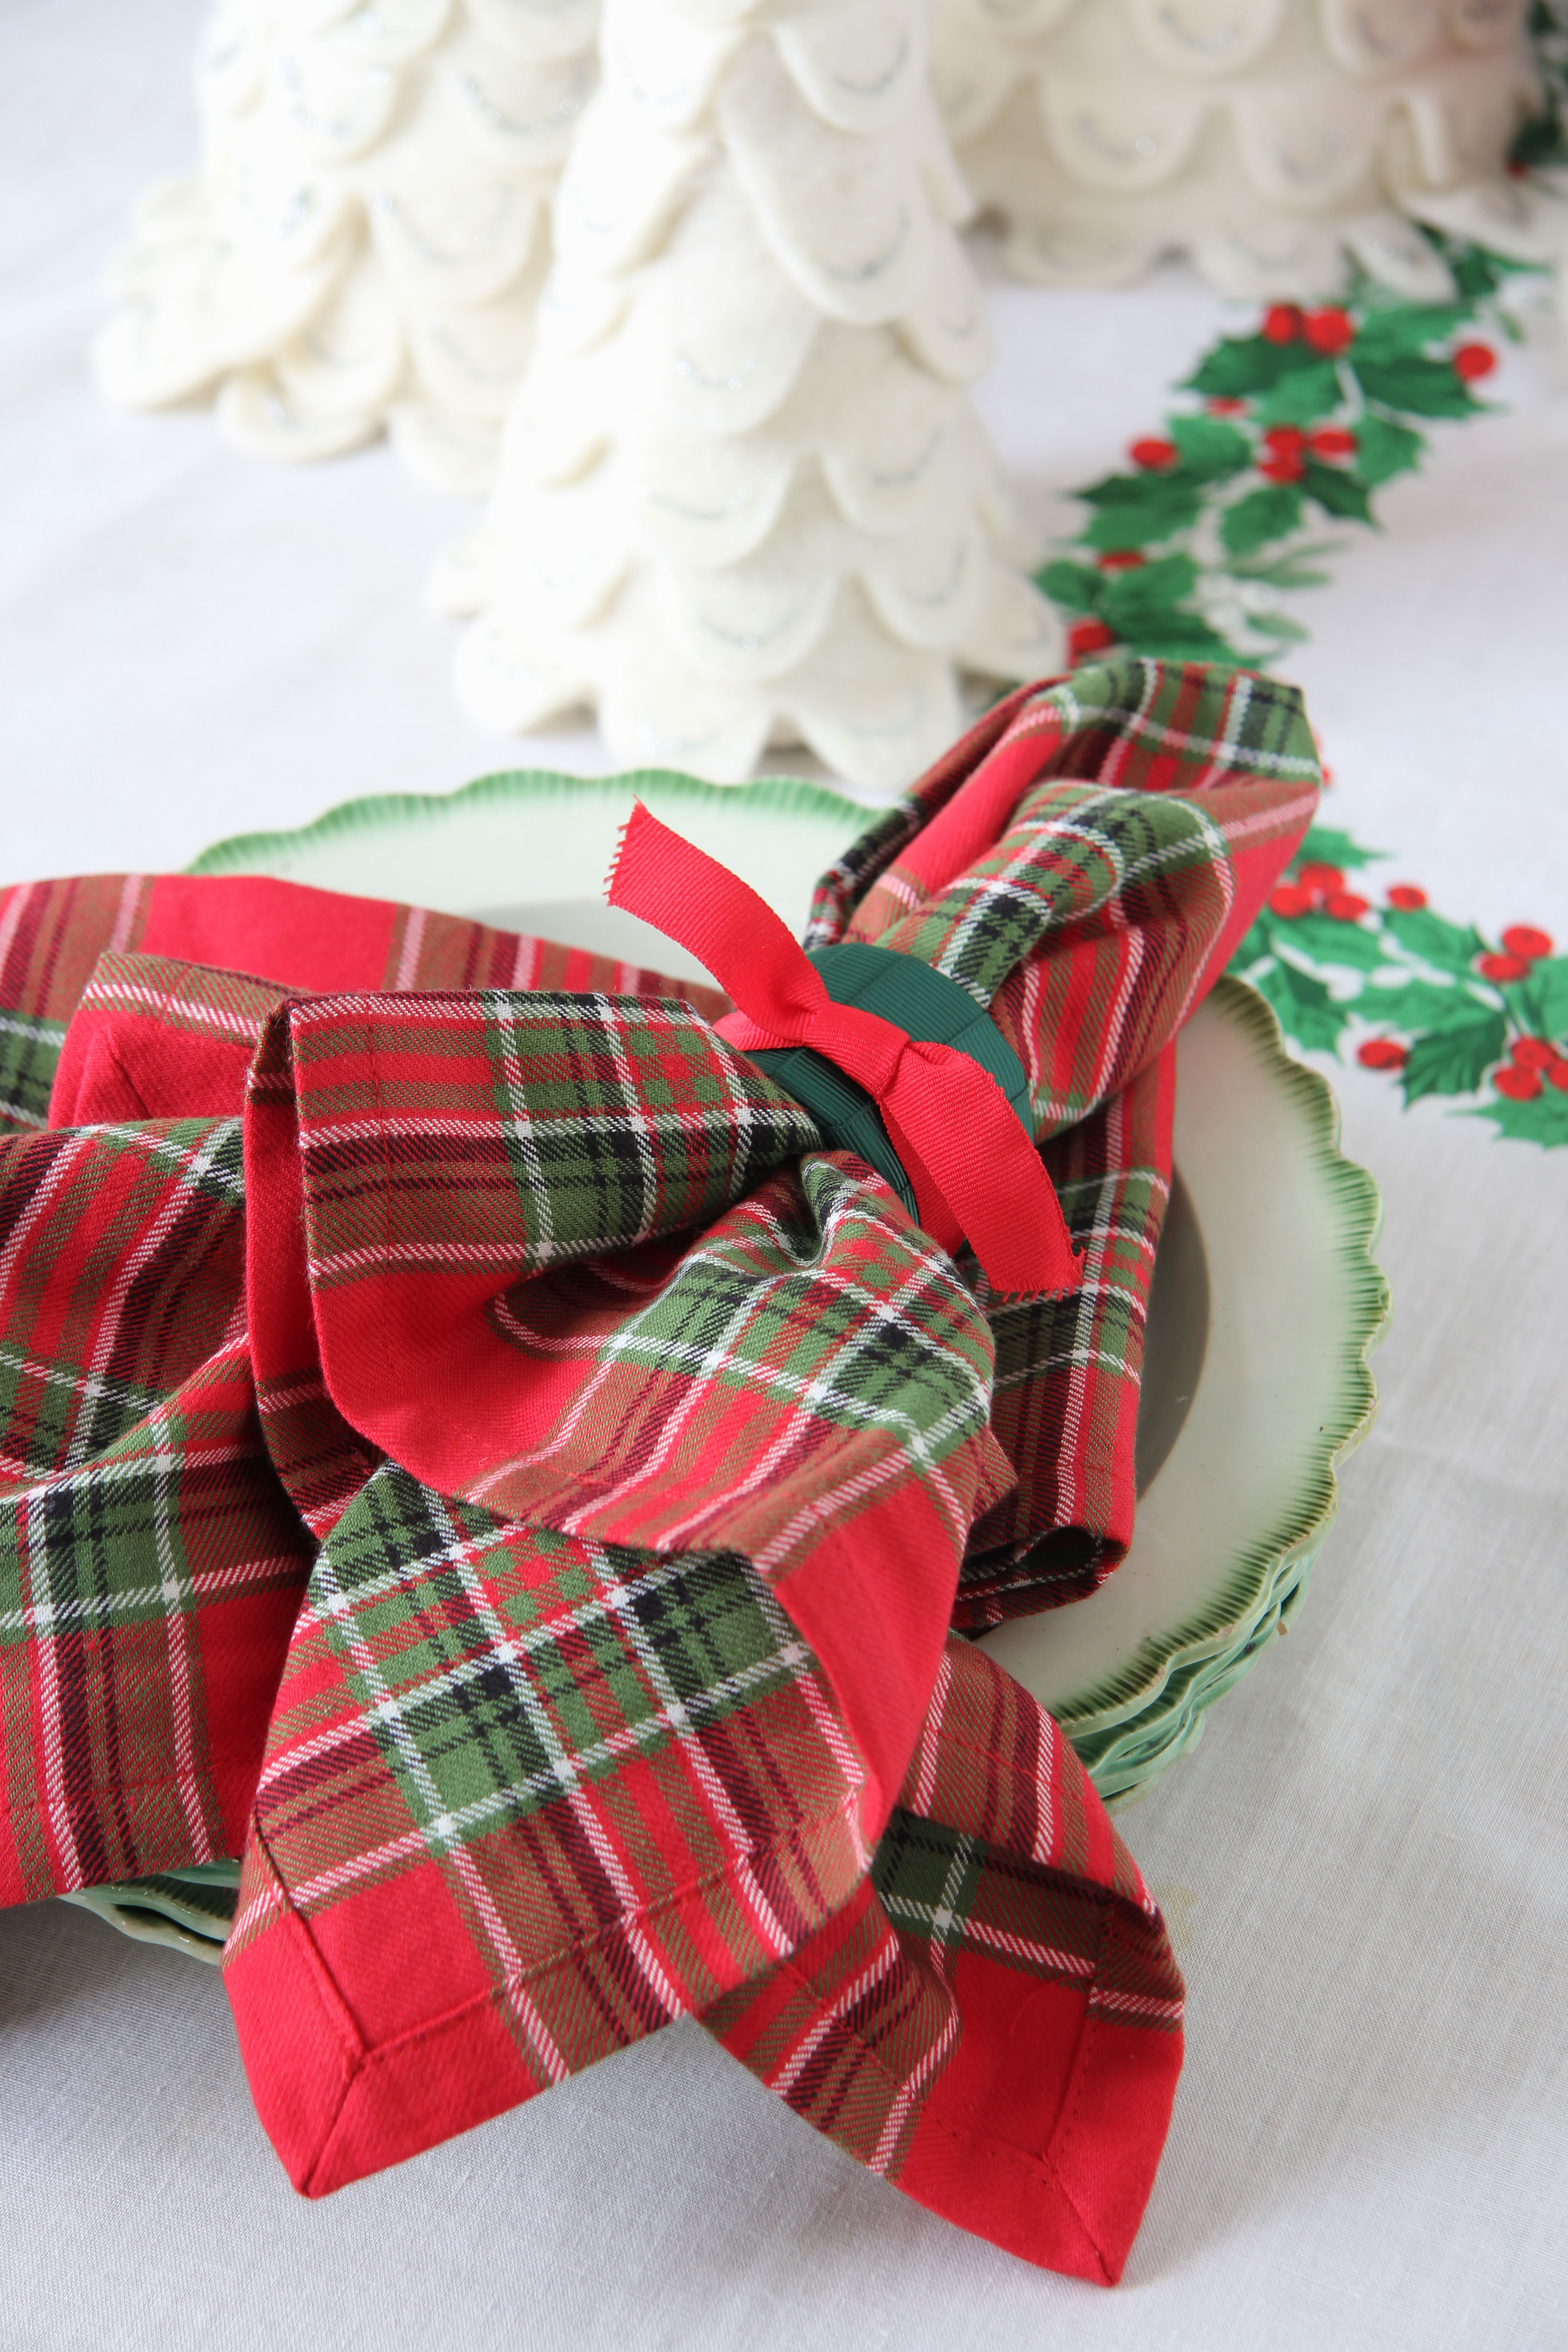 Ridgely Brode finds that mixing and matching her linens at Christmas is a fun and festive way to decorate her table on her blog Ridgely's Radar.